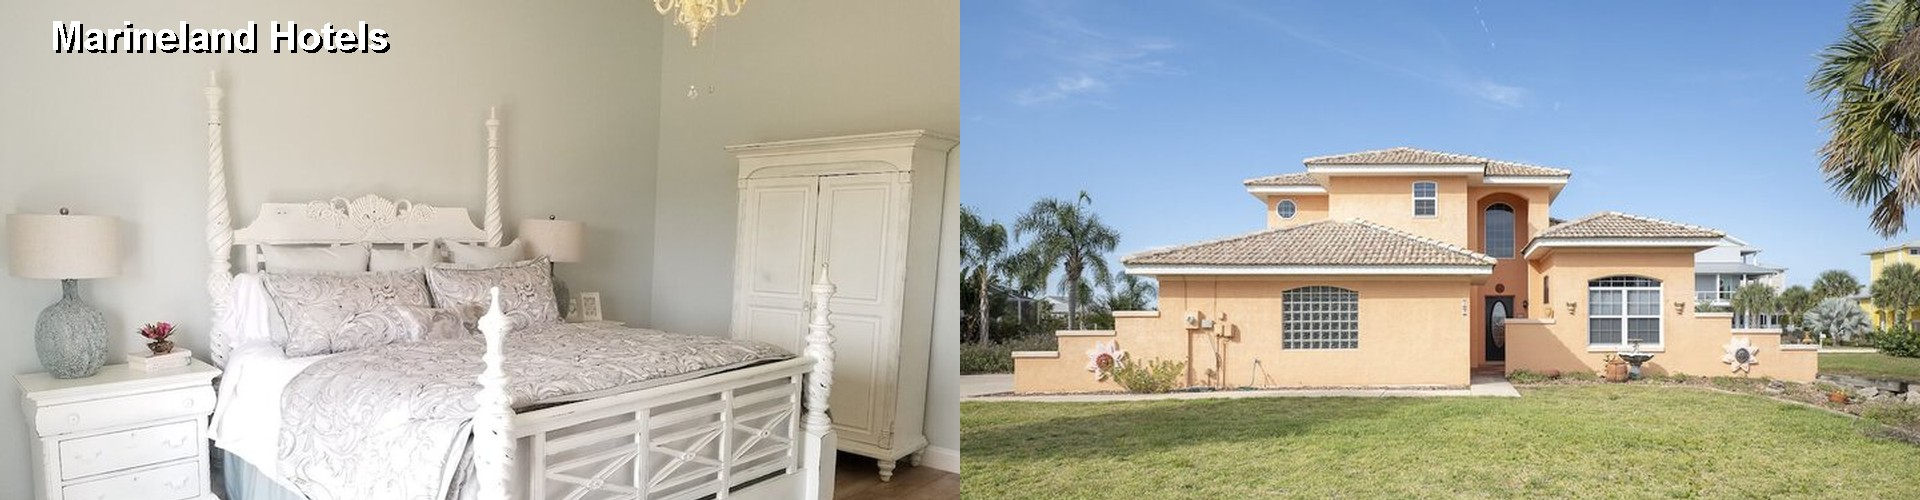 $94+ Hotels Near Marineland FL